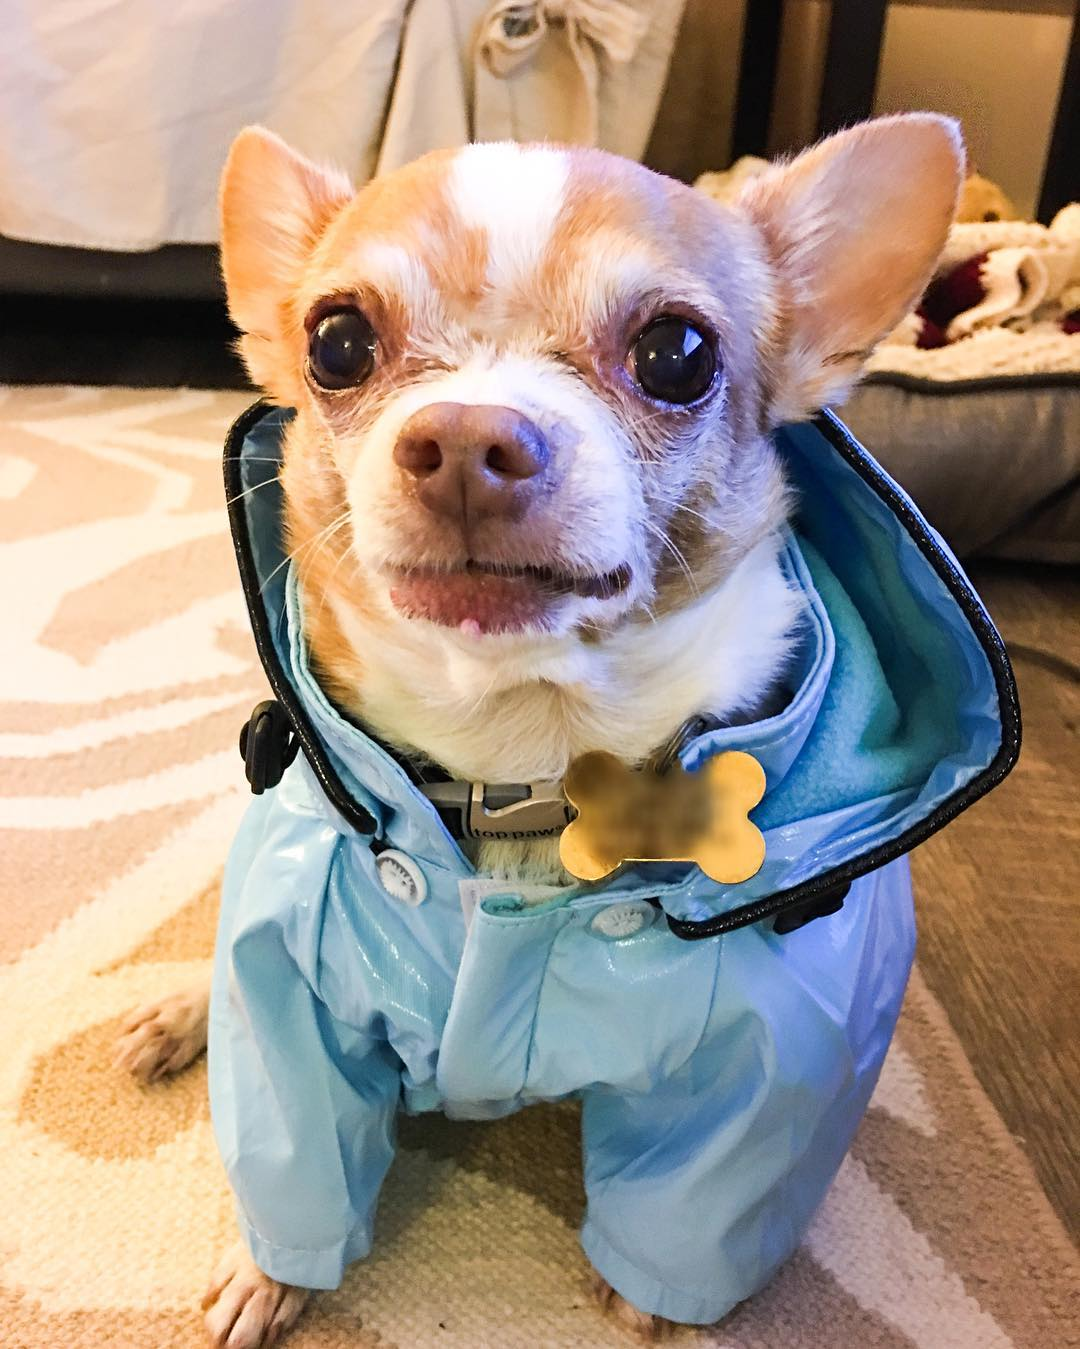 <div class='meta'><div class='origin-logo' data-origin='none'></div><span class='caption-text' data-credit='Photo submitted to KGO-TV by @portiaandpumapups/Instagram'>A dog wears a little raincoat in this undated image.</span></div>